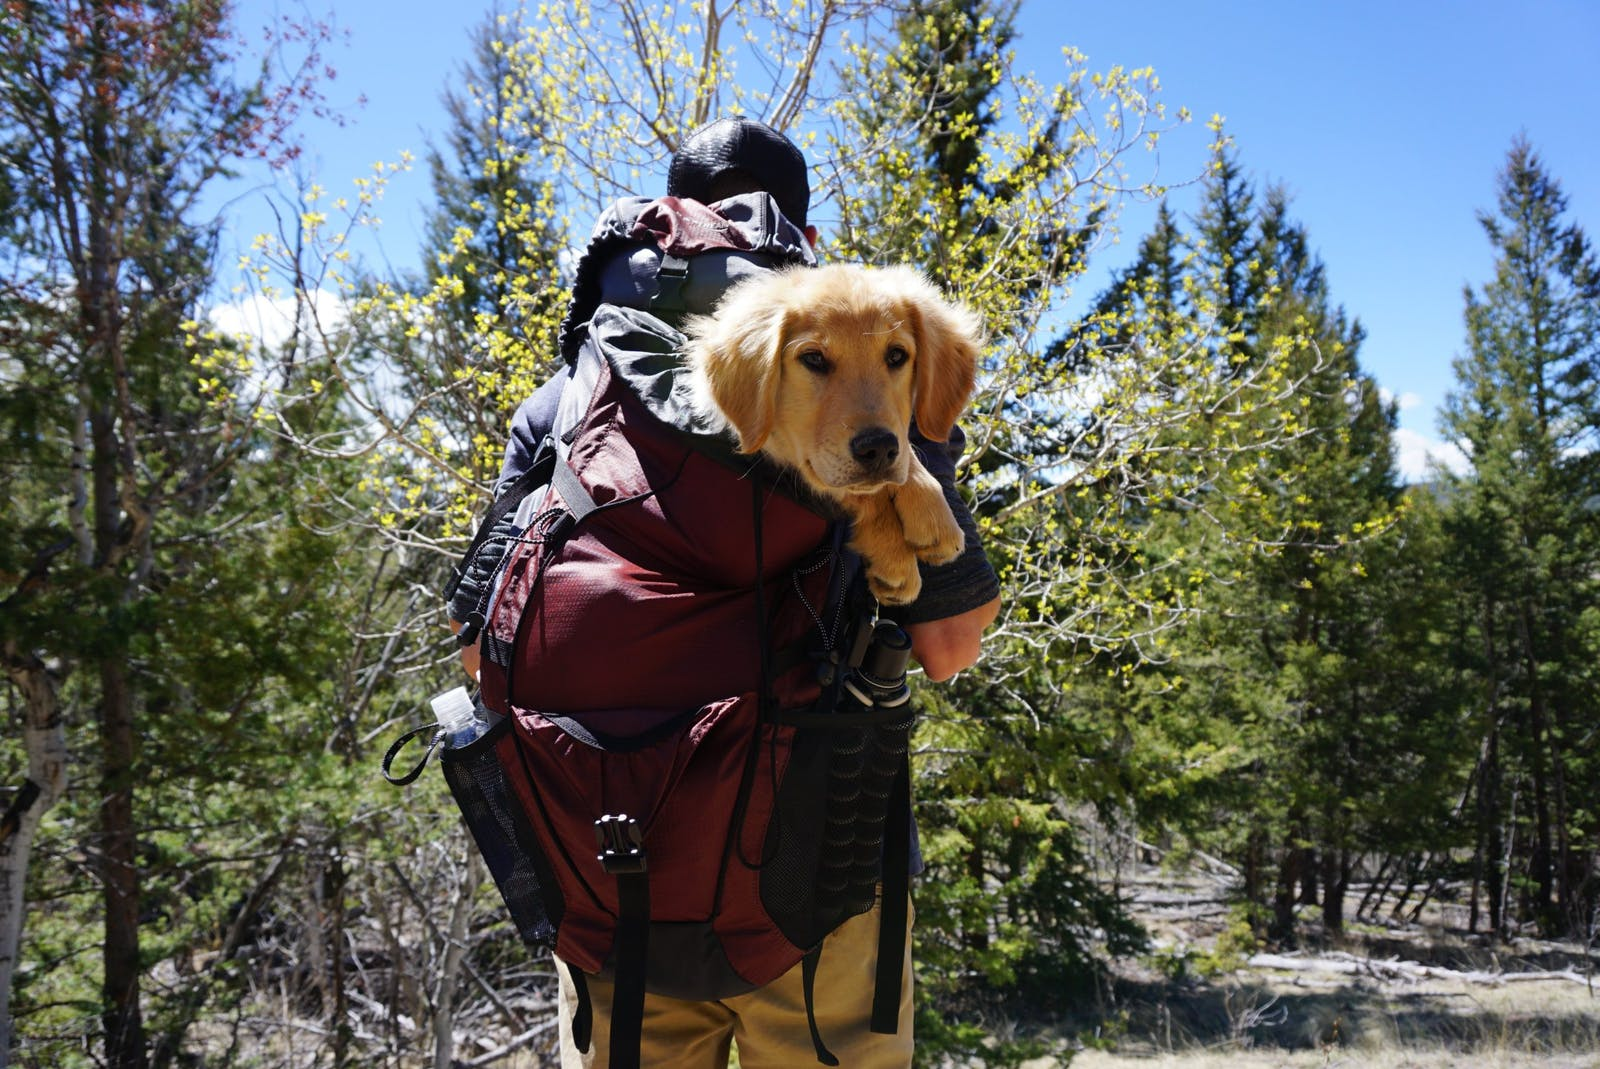 Man taking a hike with dog in backpack